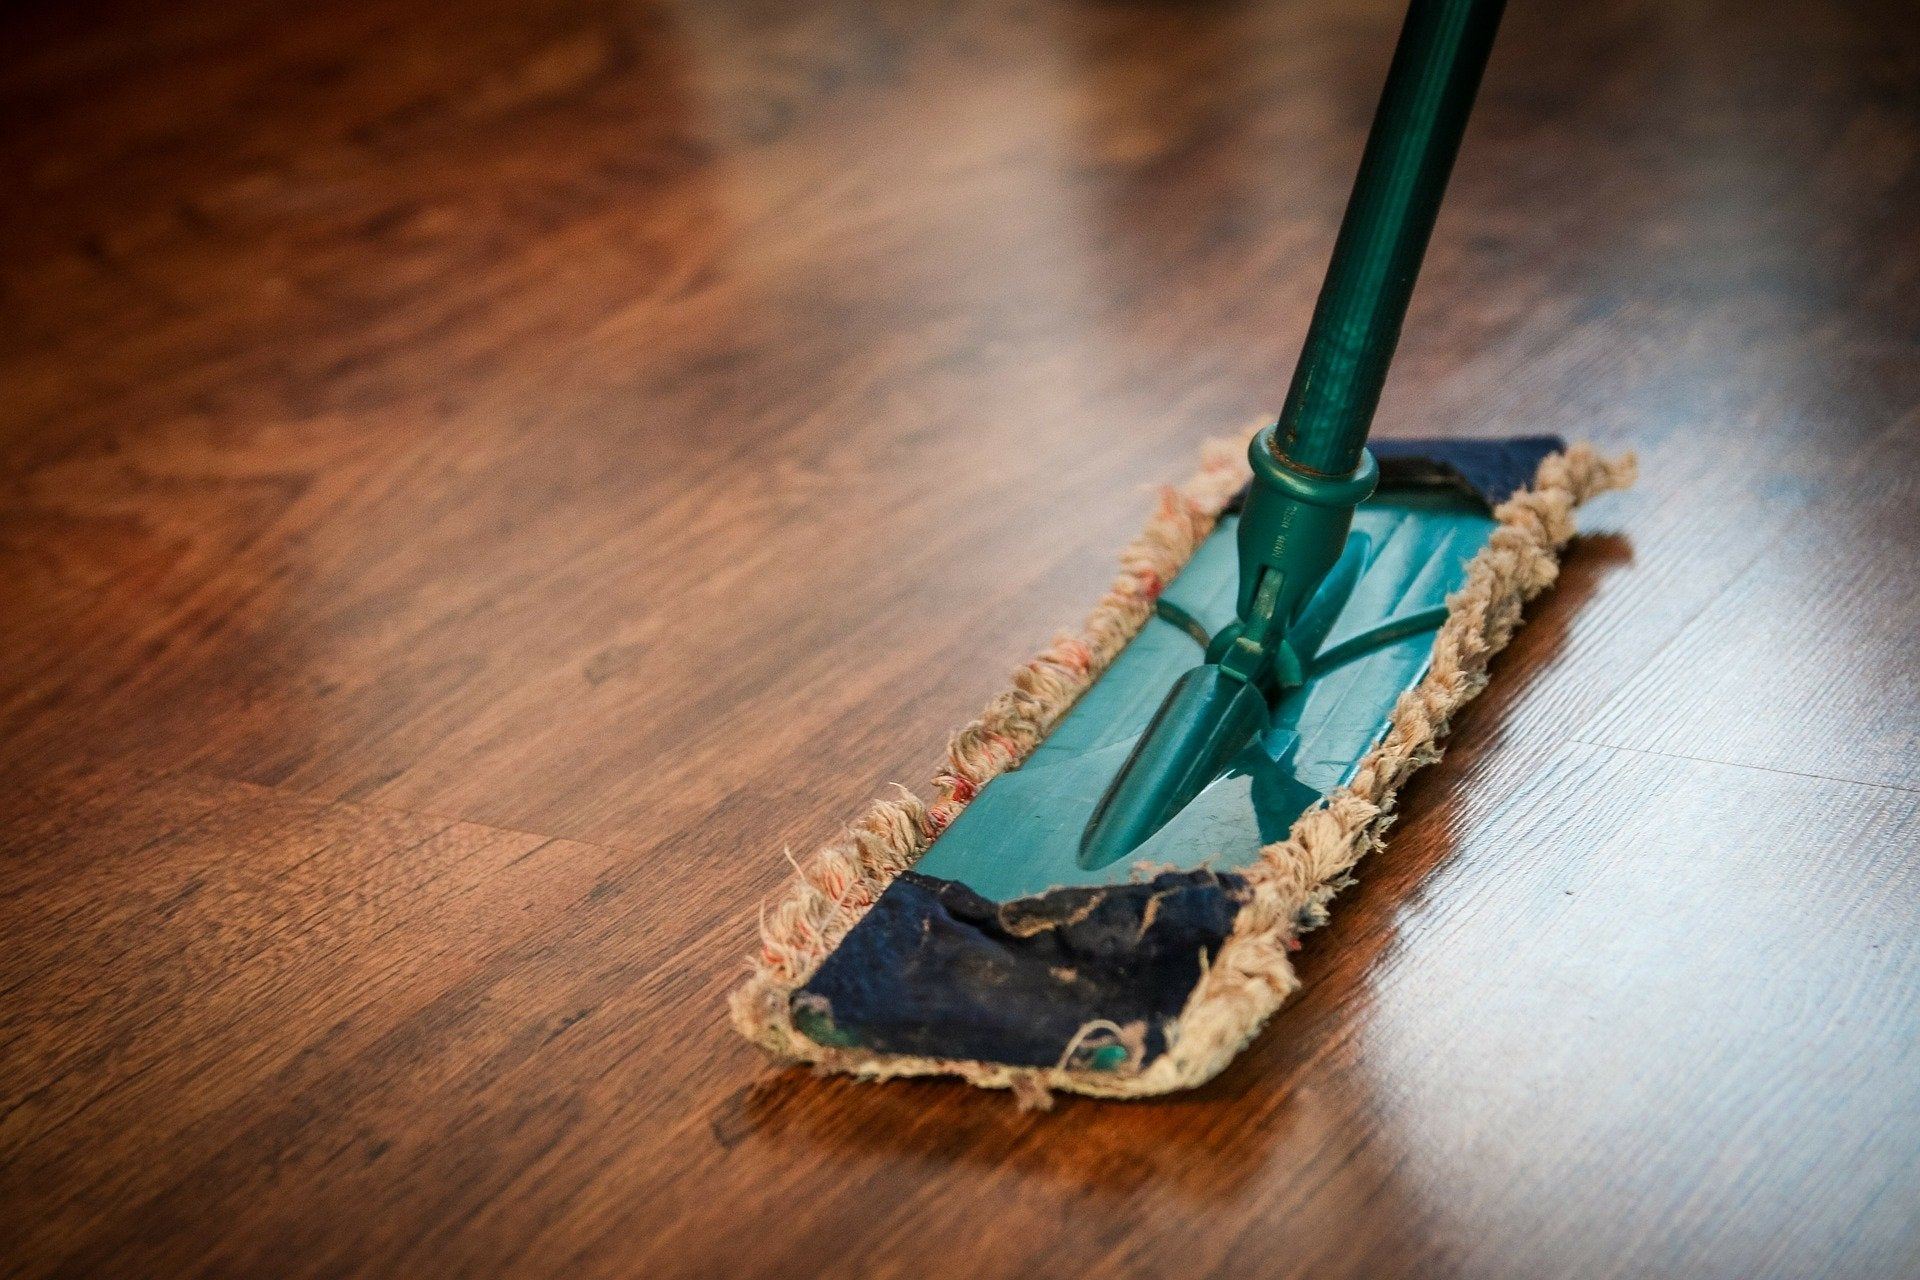 Wood floor cleaner can also be vinegar